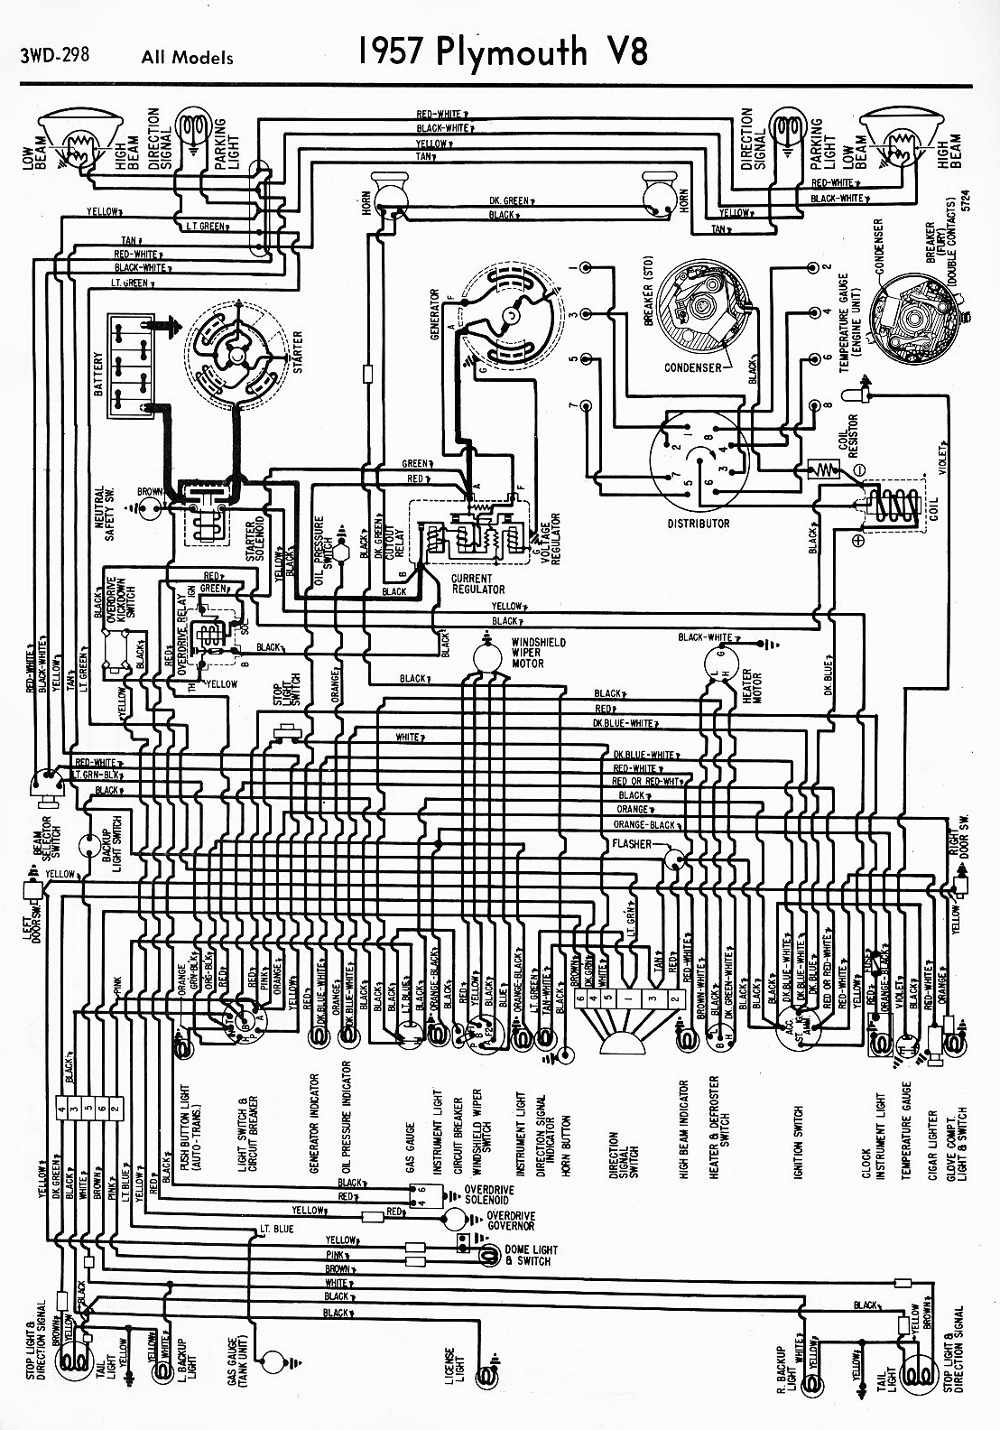 m1009 fuse box electrical schematic m1008 wiring diagram m1009 battery wiring [ 1000 x 1430 Pixel ]